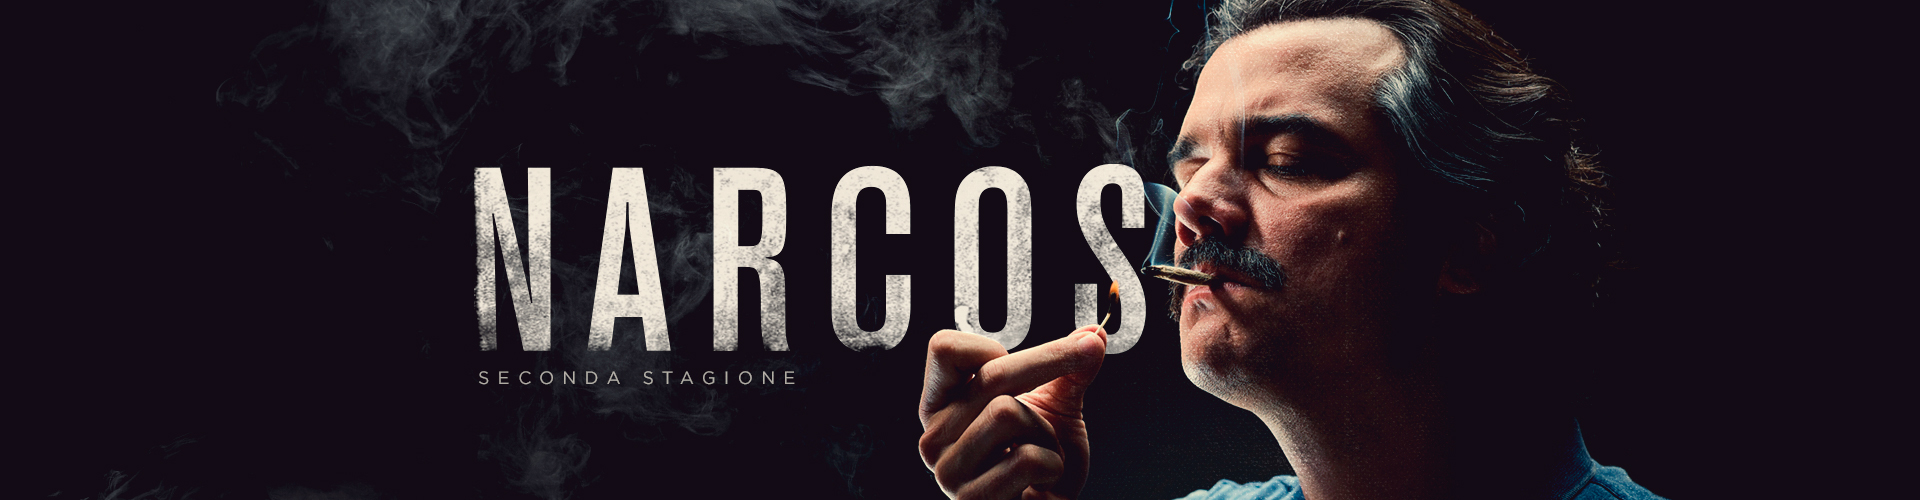 Dvd-it_slider_Narcos